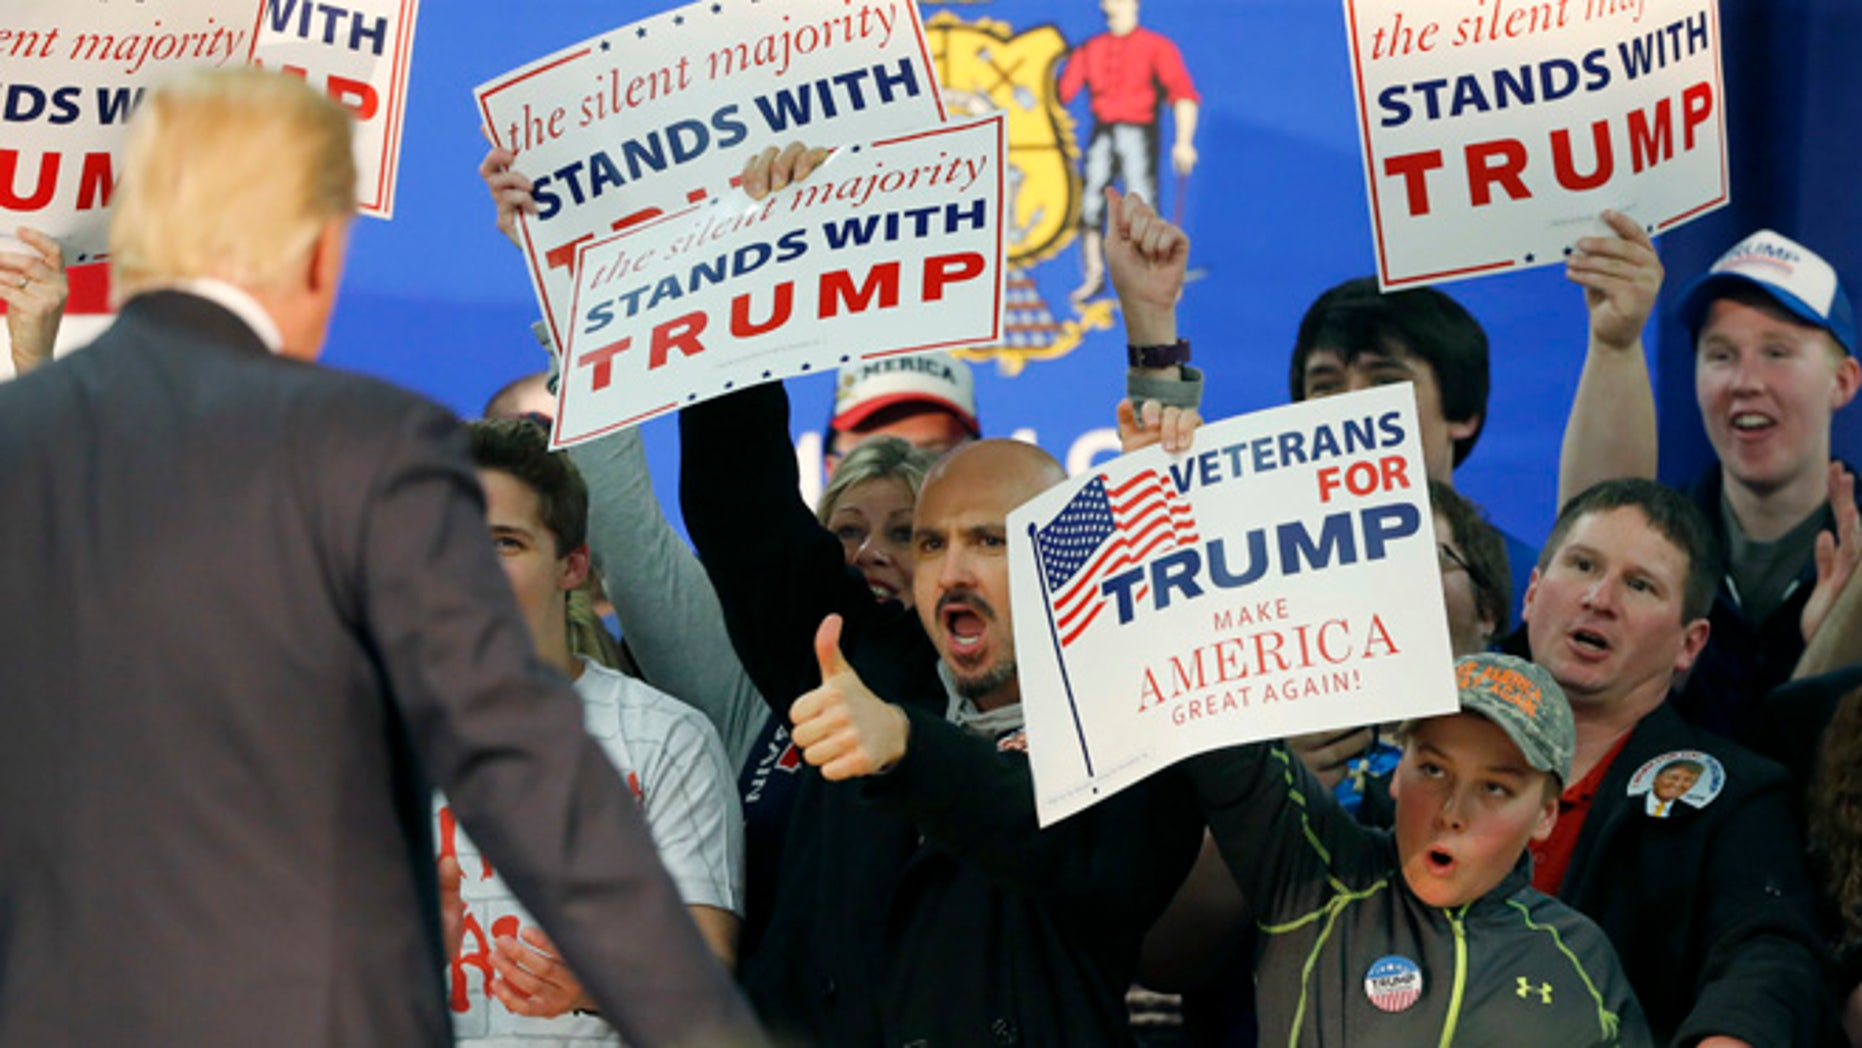 FILE - In this Saturday, April 2, 2016 file photo, a supporter of Republican presidential candidate Donald Trump gives him a thumbs up during a town hall in Rothschild, Wis. (AP Photo/Charles Rex Arbogast, File)